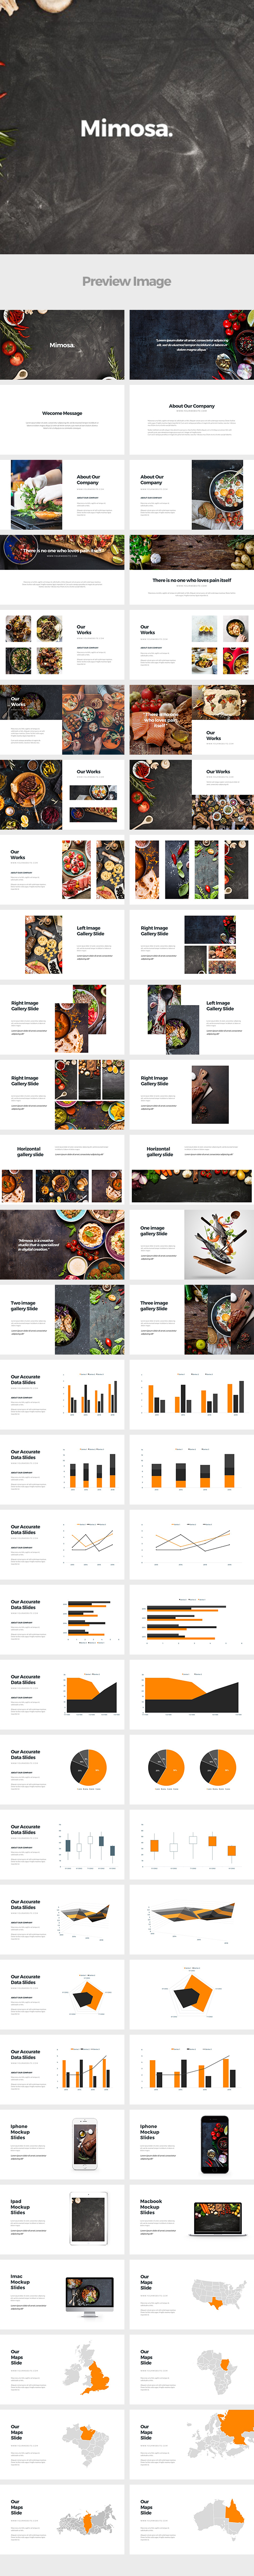 GraphicRiver Mimosa Google Slides Template 20797507